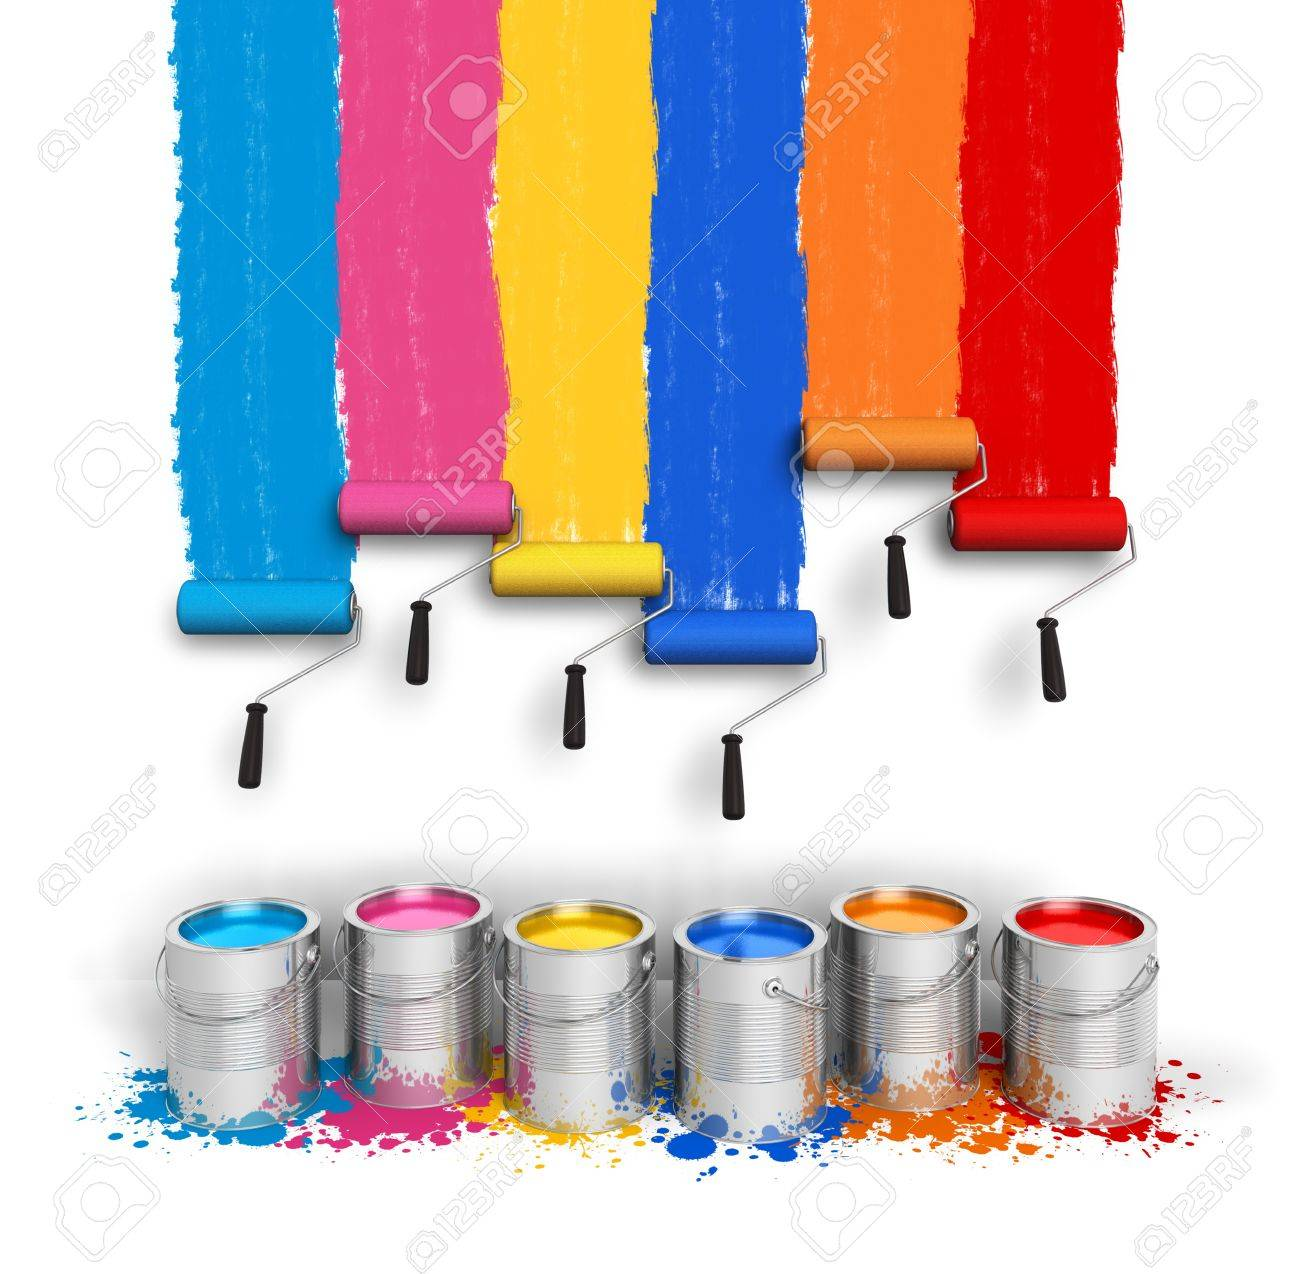 Creativity concept  set of color roller brushes with trails of paint on the wall and metal cans with oil paint isolated on white background Stock Photo - 13098661